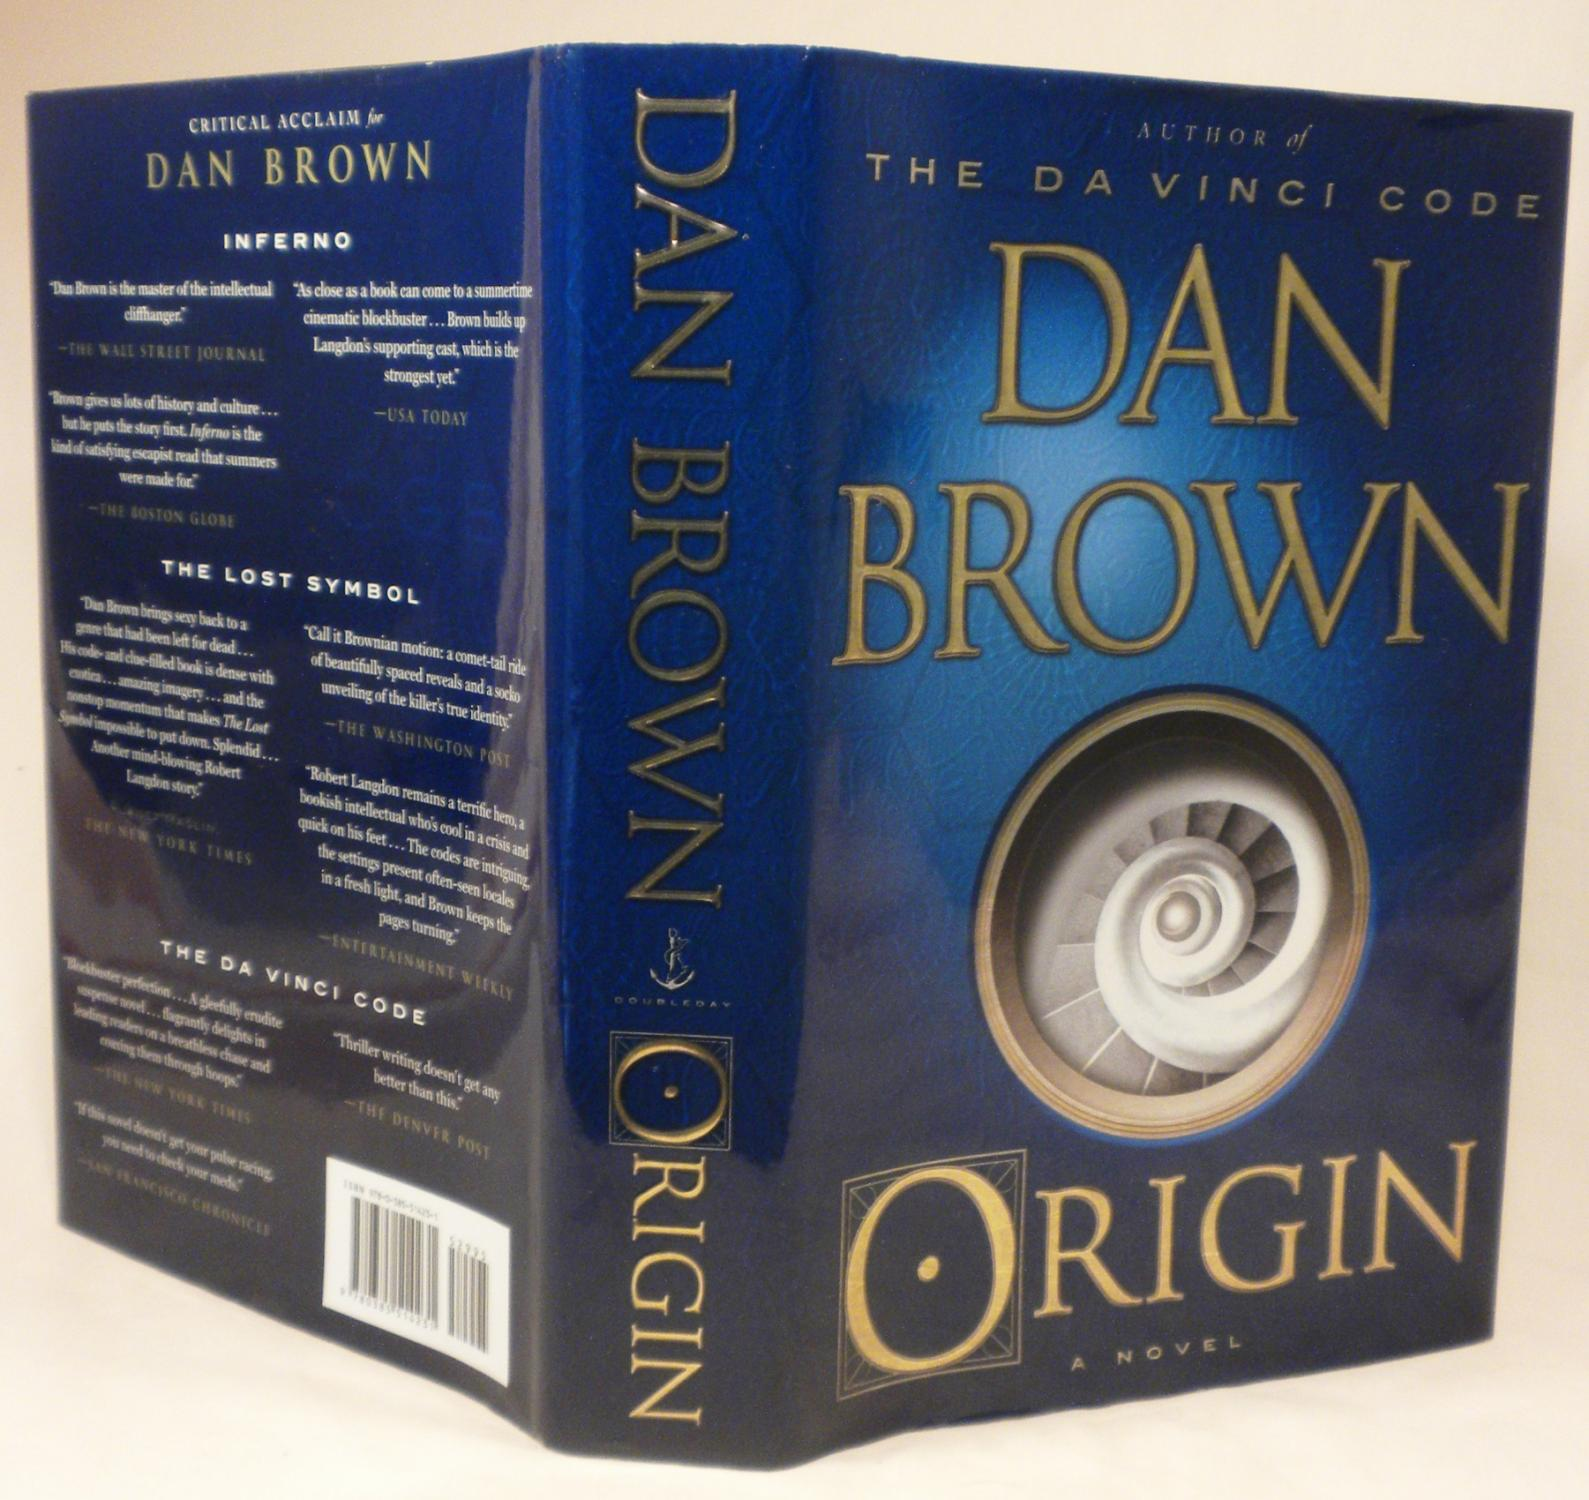 Book Cover Returns To Its Origins In >> Origin By Dan Brown Doubleday 9780385514231 Hardcover 1st Edition